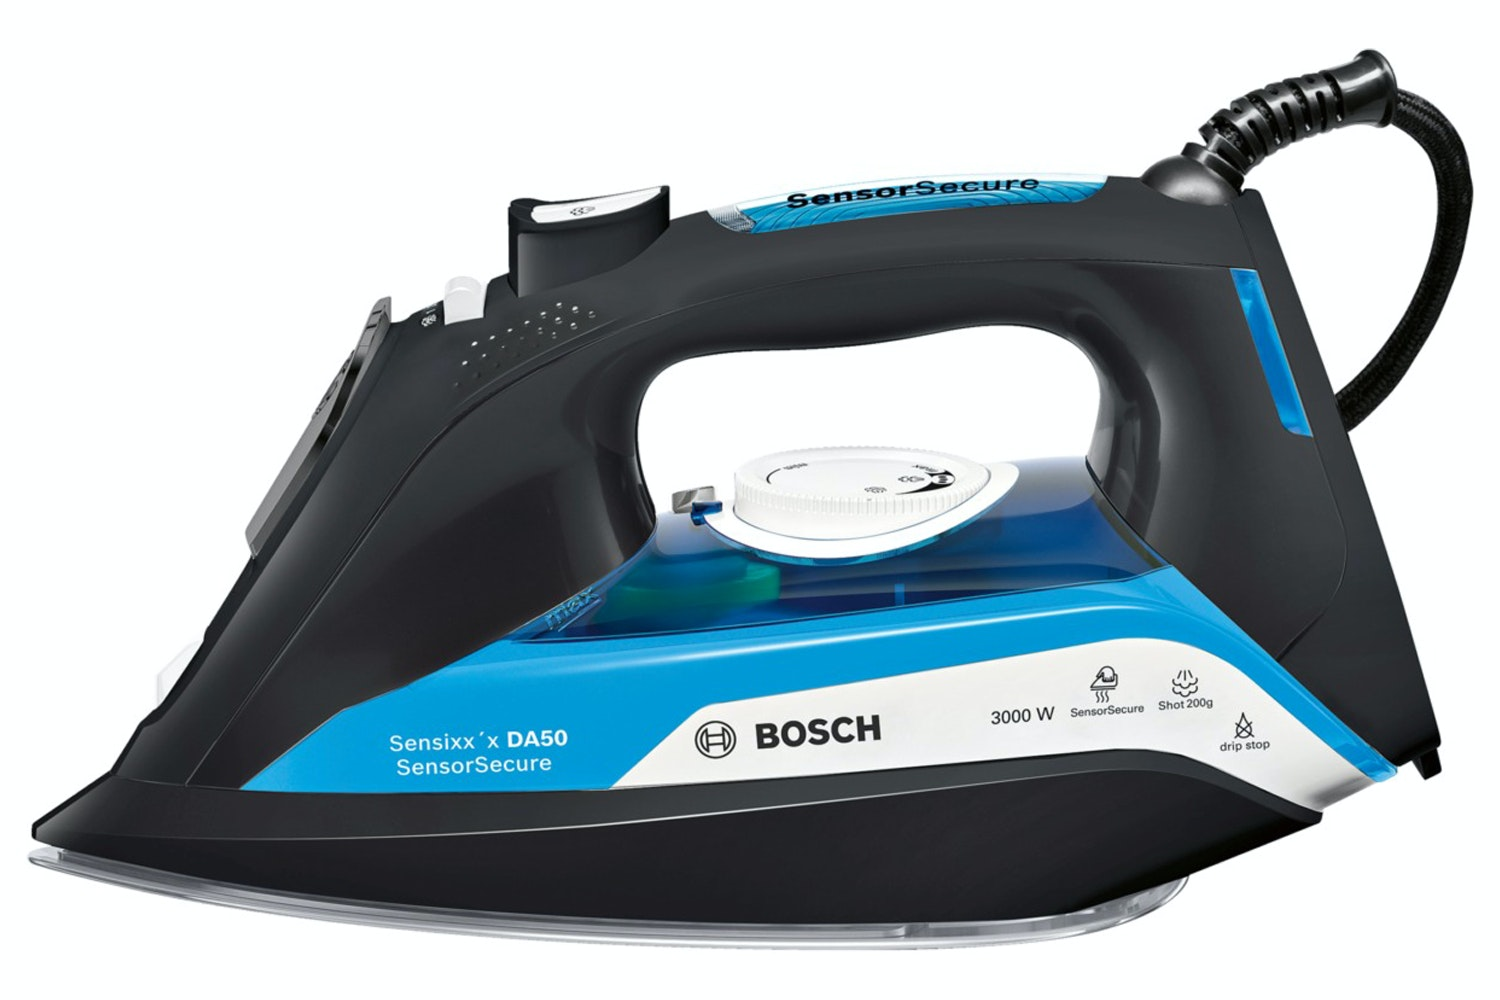 Bosch 3100W TeamShot Iron | TDA5080GB